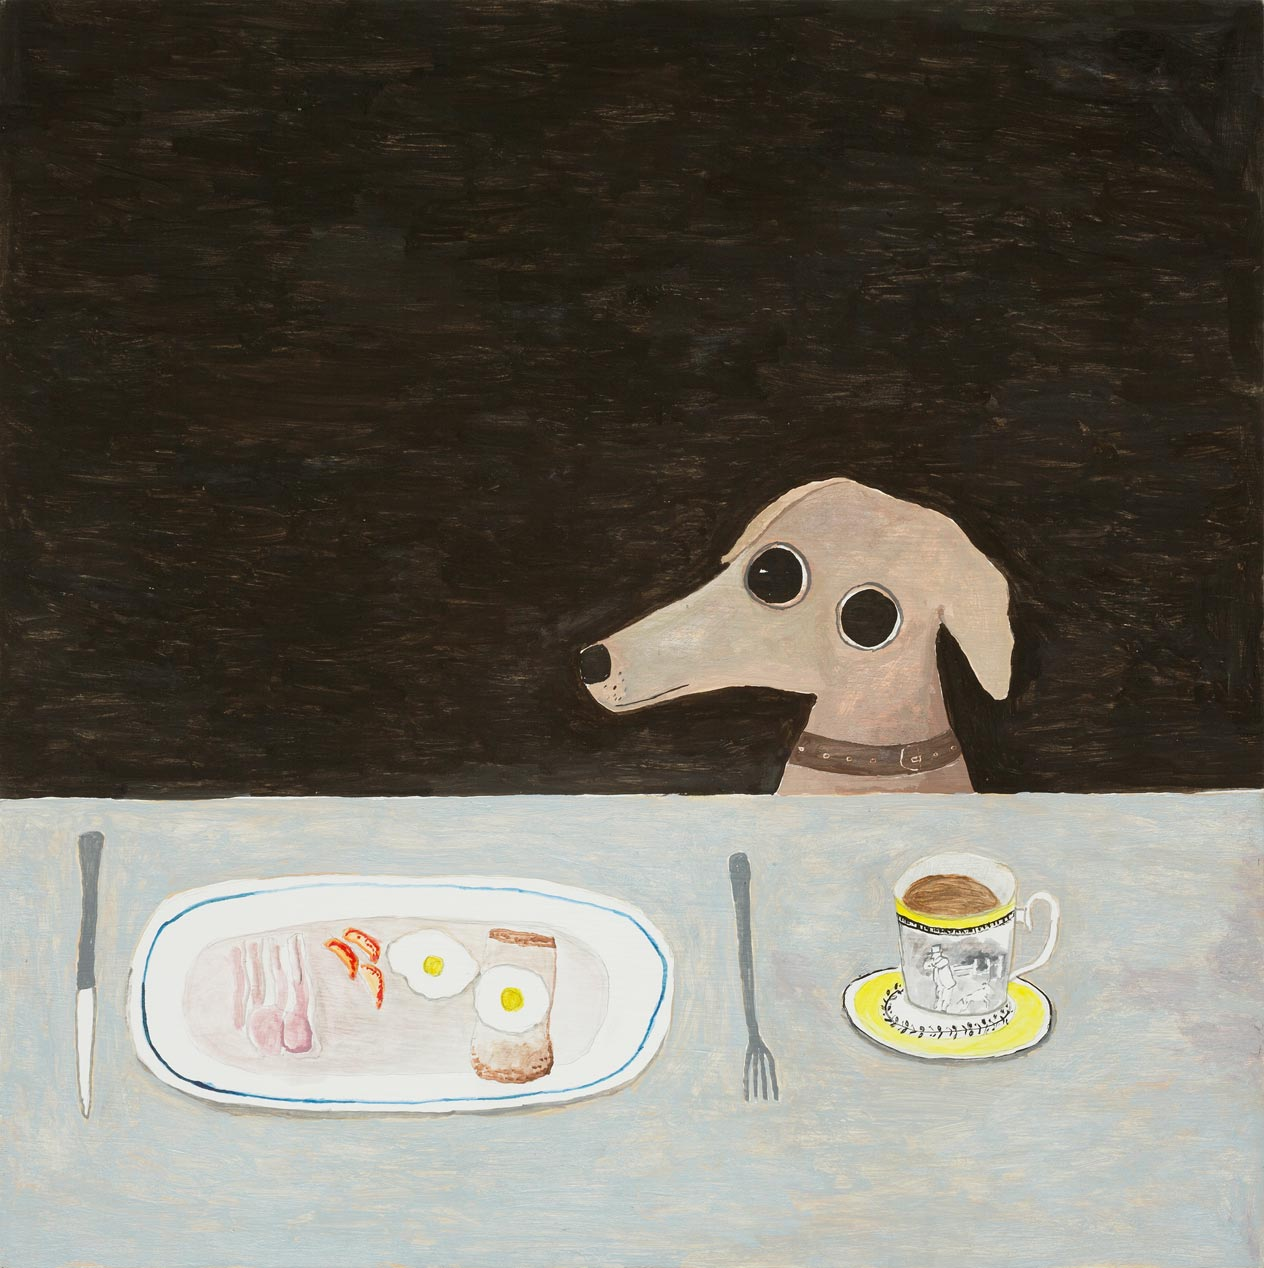 Noel-McKenna_Dog-at-breakfast-table_copyright_the-artist-and-mother's-tankstation